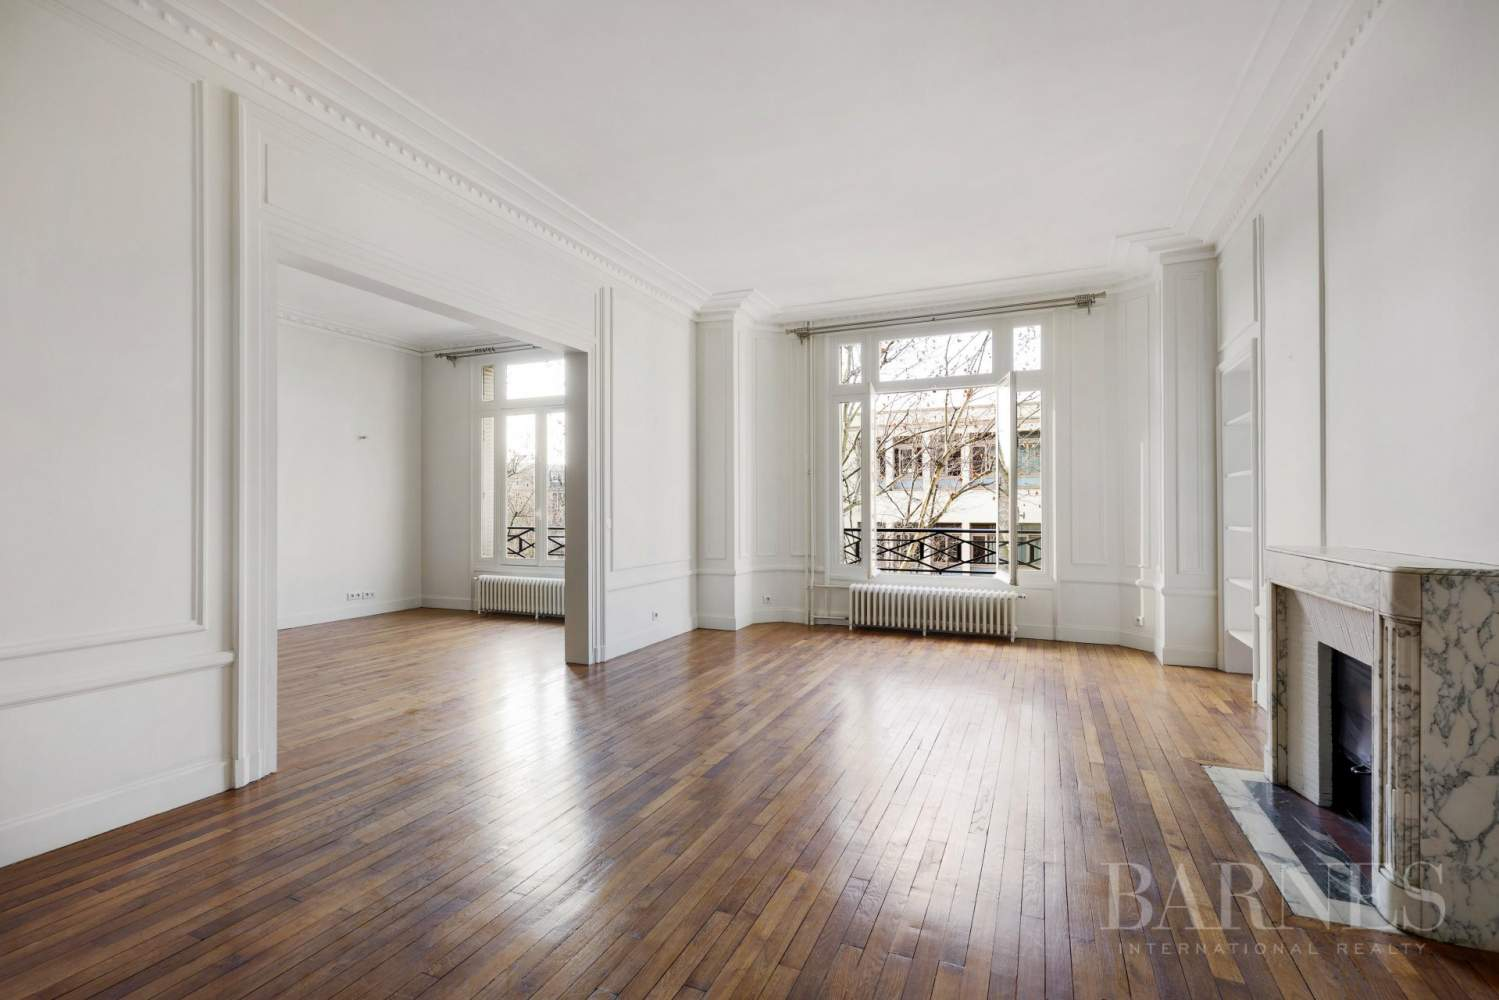 EXCLUSIVE - 8-ROOM APARTMENT FOR SALE - RENOVATED 1930s BUILDING - NEUILLY/PASTEUR picture 13